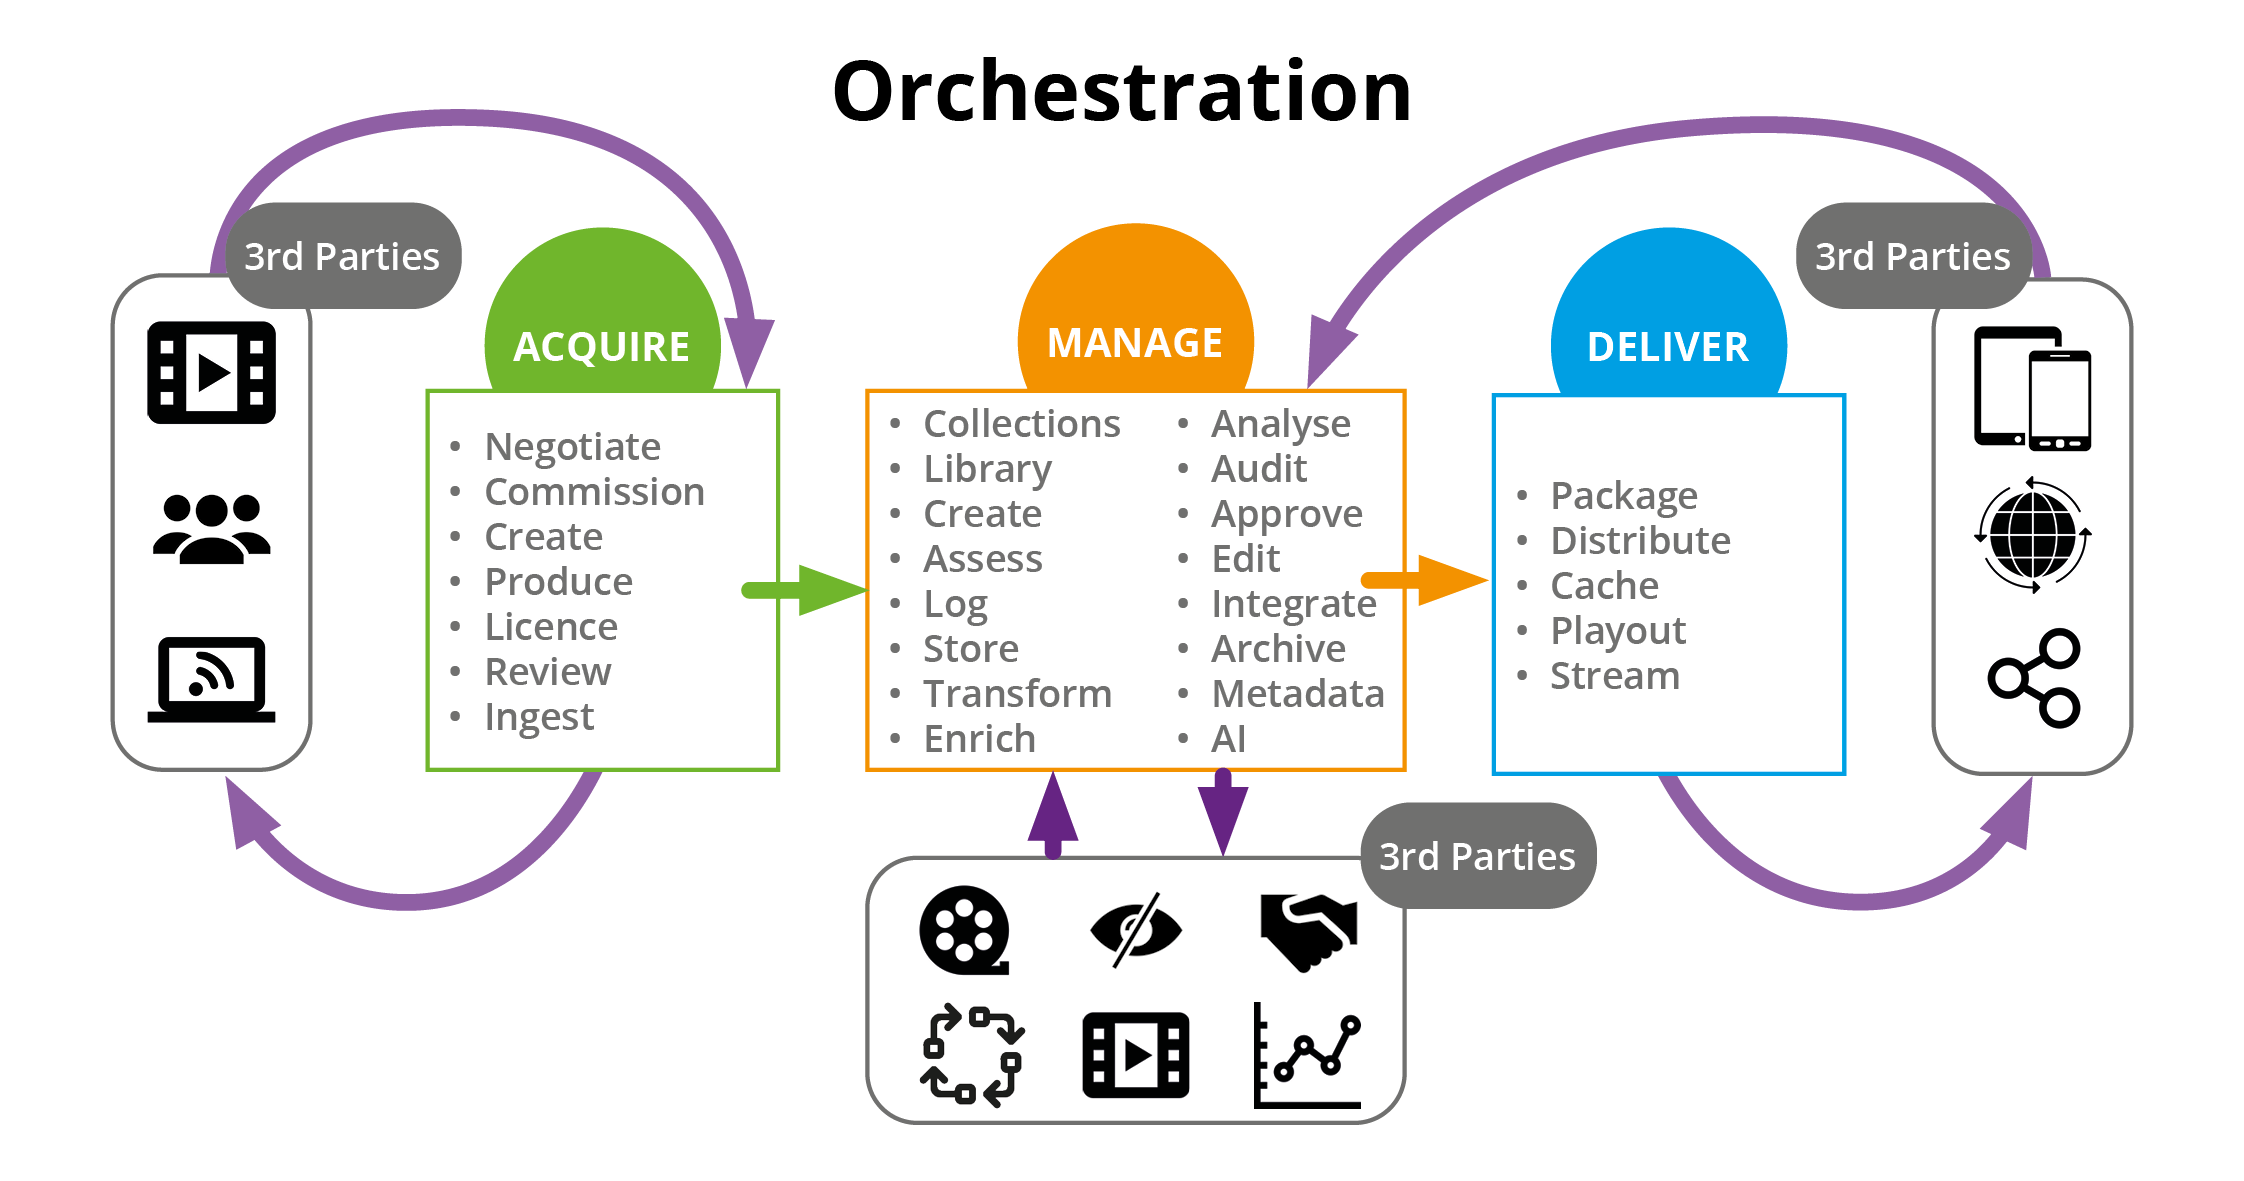 Mediaflex-UMS Orchestration - The Digital Supply Chain to Acquire Manage Deliver